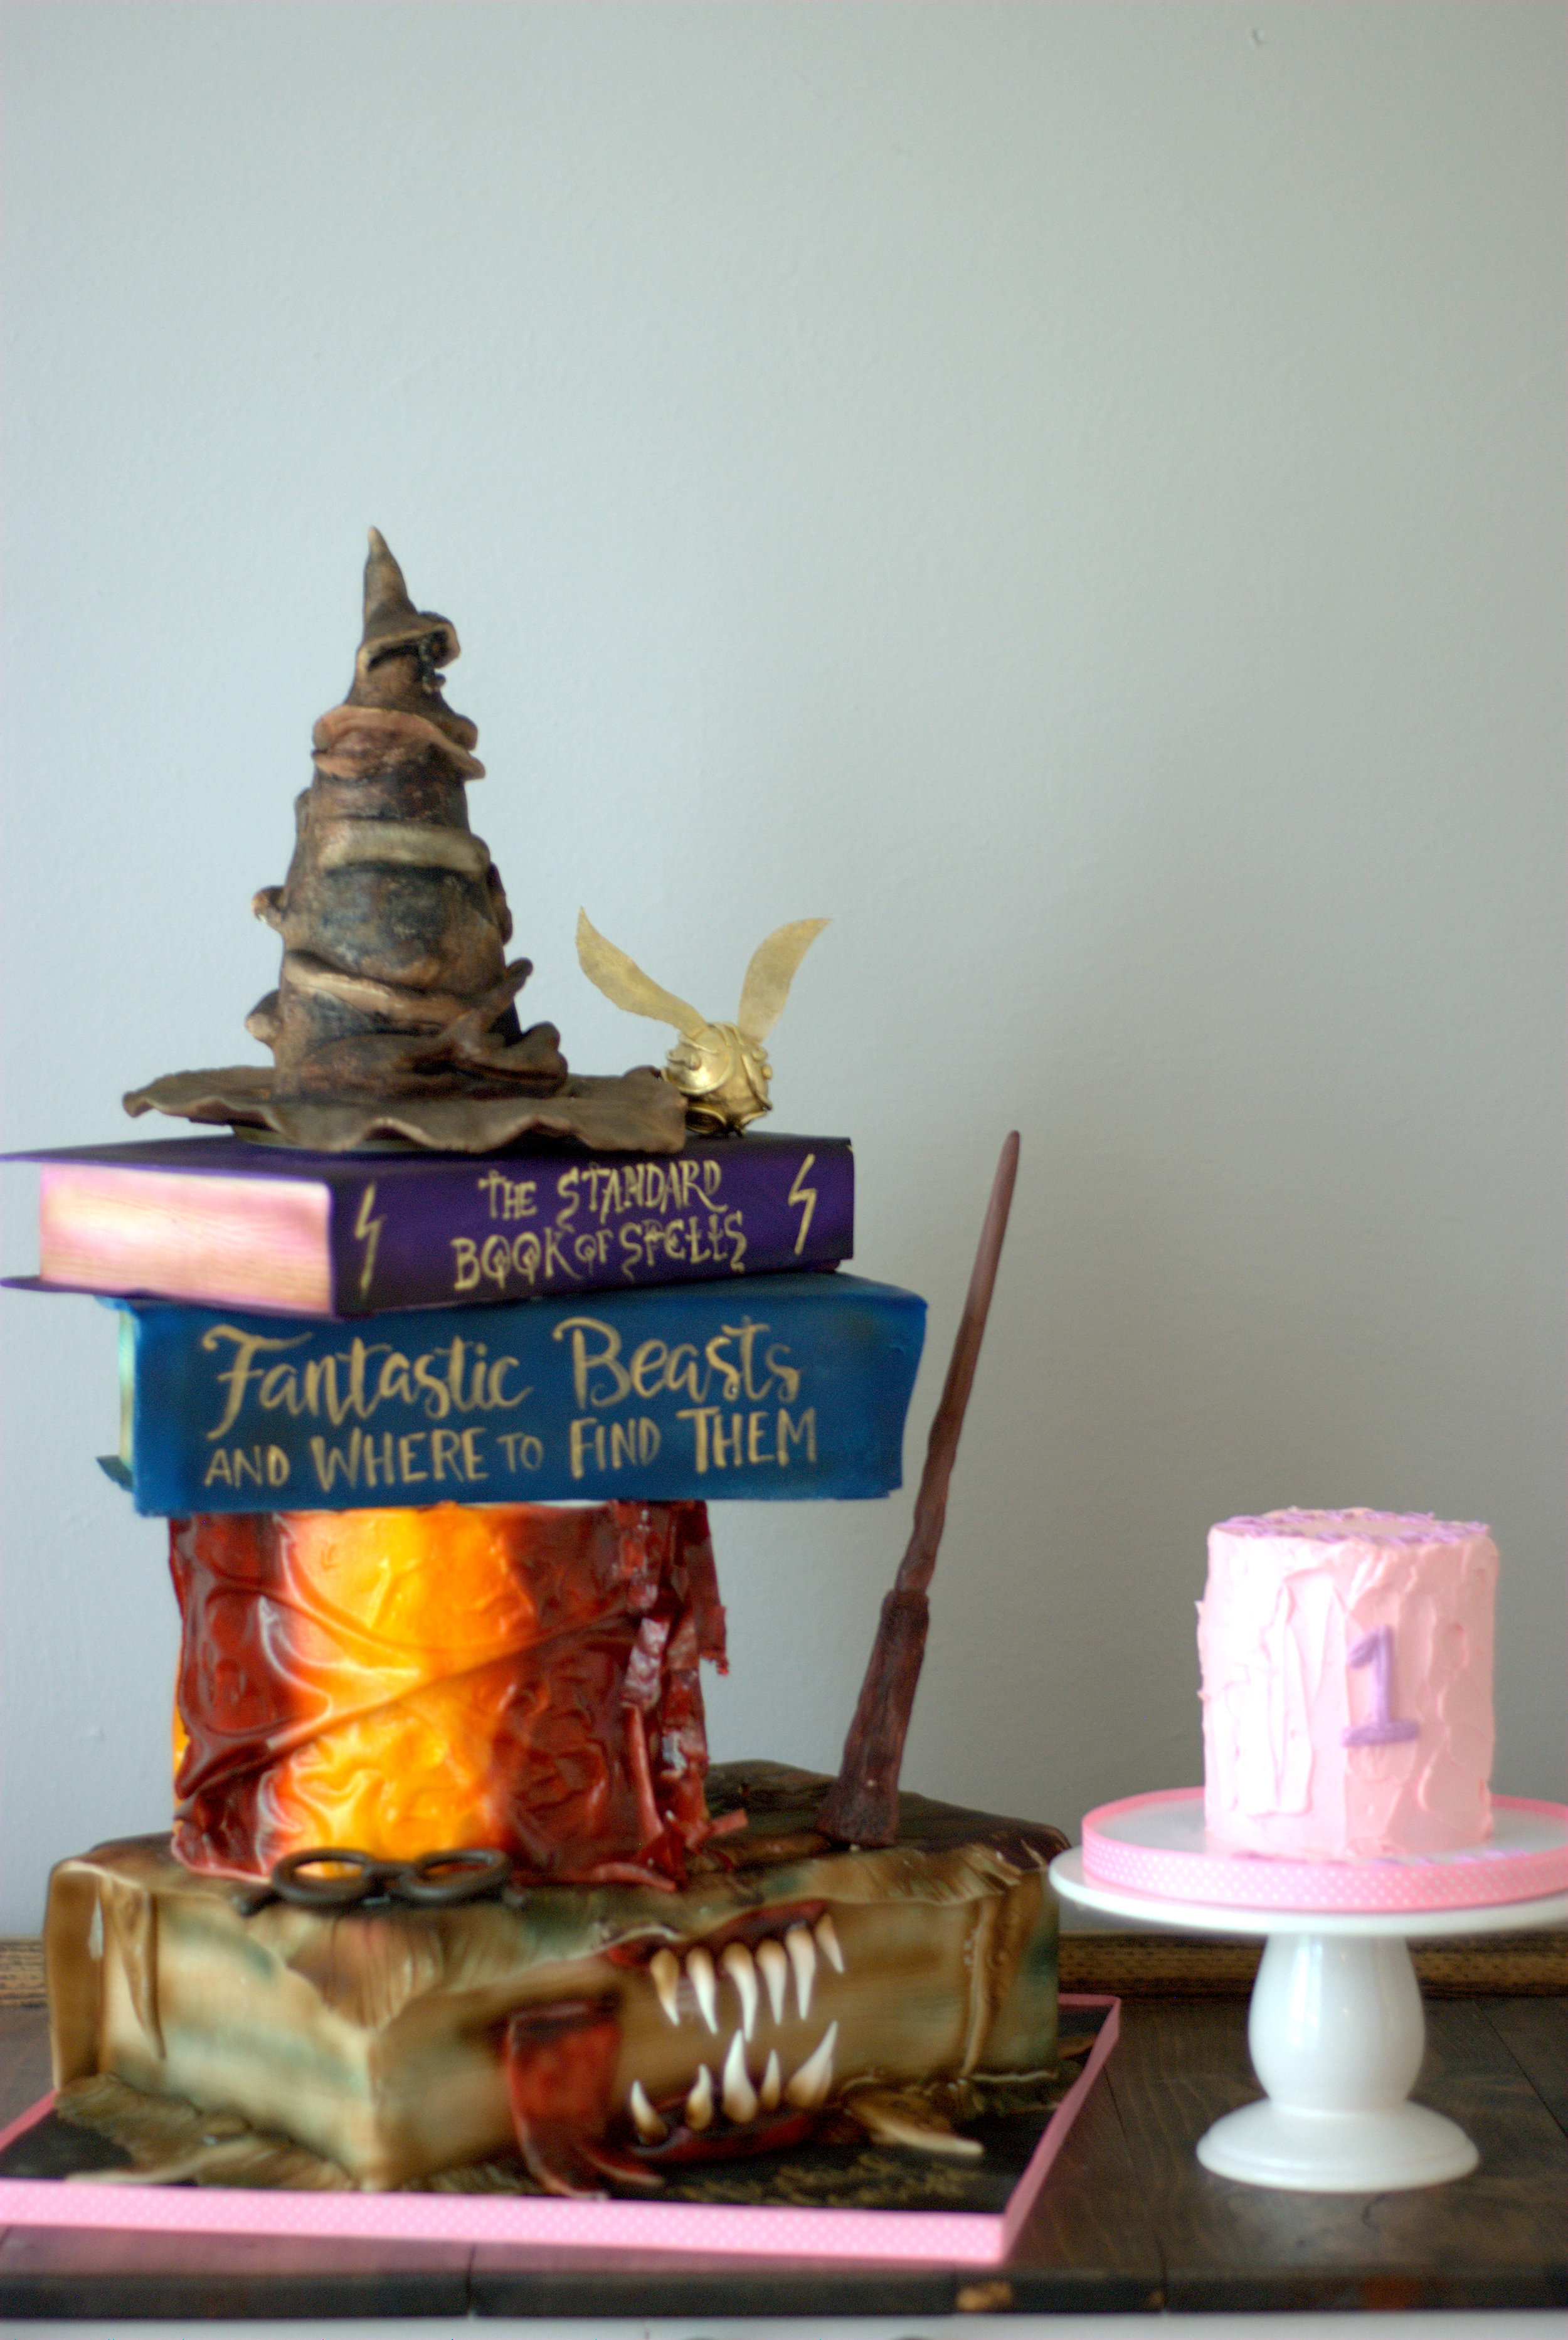 Fantastic Beasts and Where to Find Them wedding grooms Cake + destination wedding coordinator epoch co austin houston dallas fort worth college station